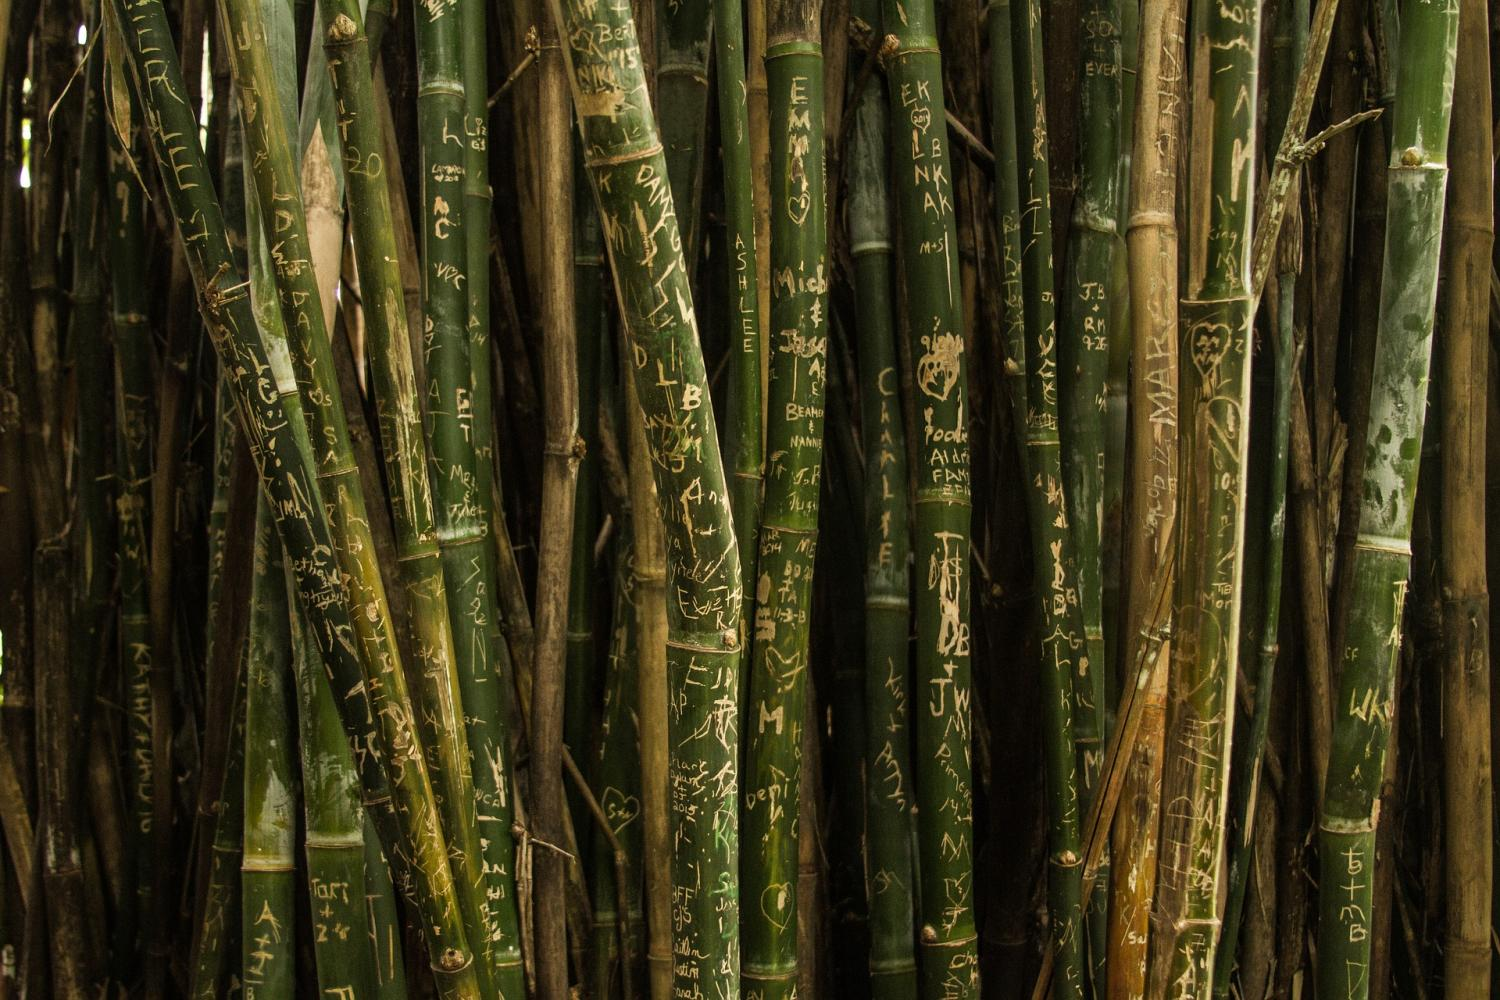 Replacing Trees With Bamboos Halves The Carbon Storage Capacity Of